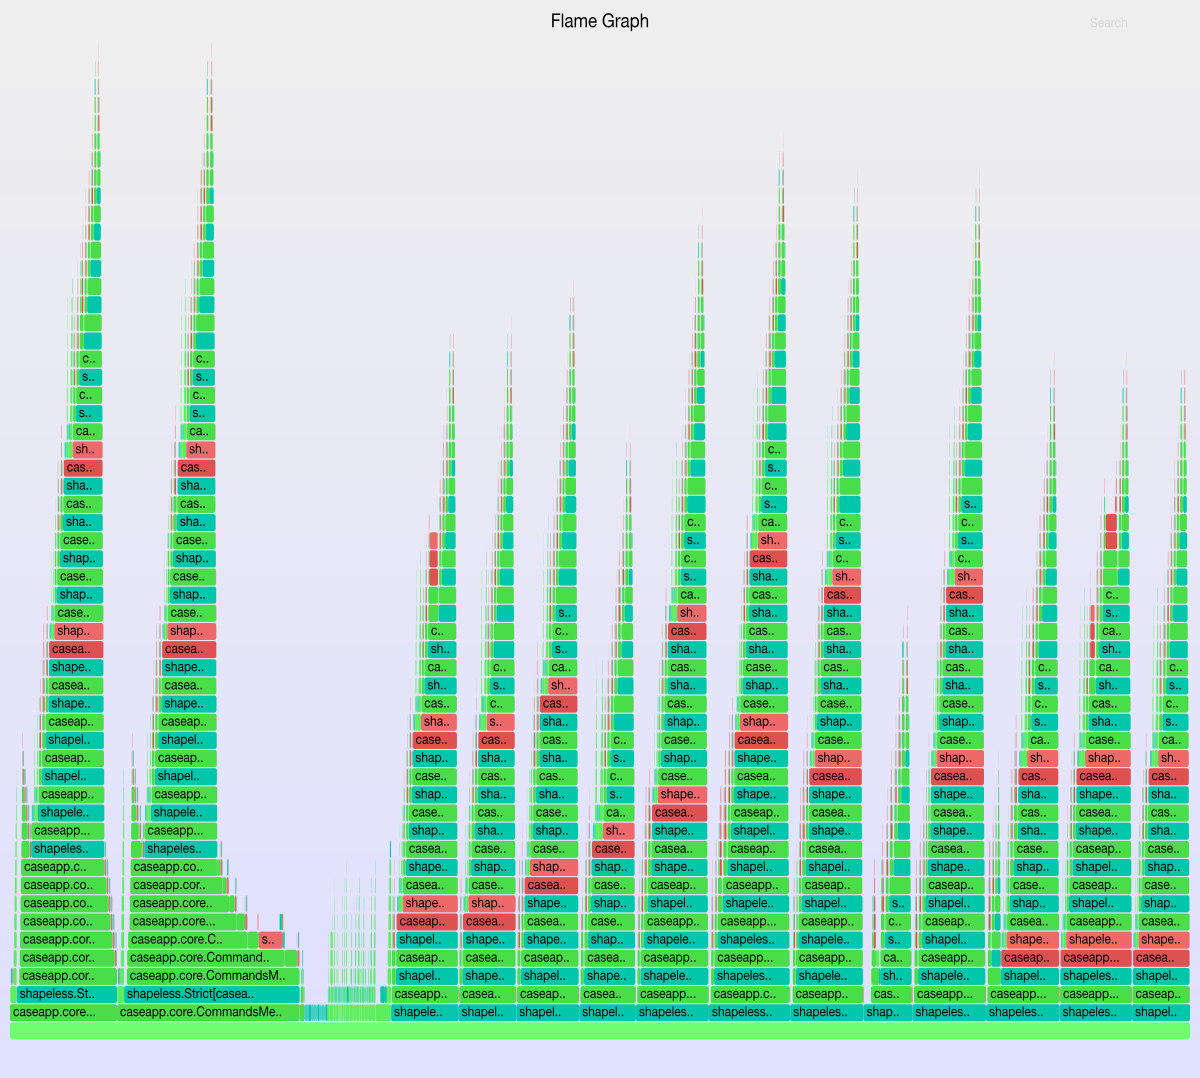 Flamegraph after more cached parsers